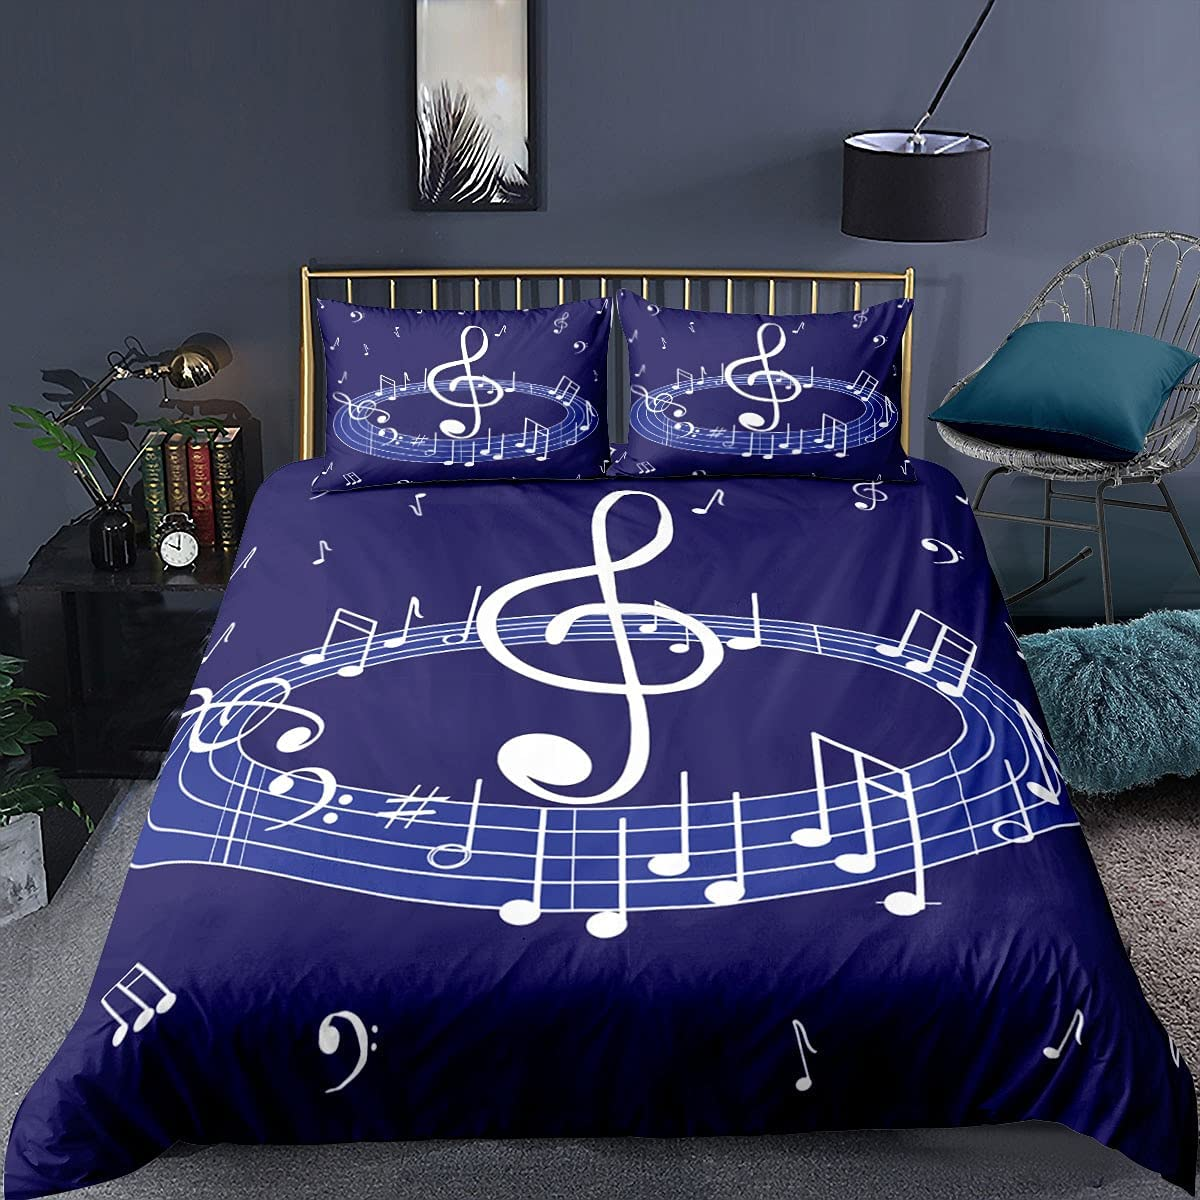 Blue Bedding Set Discount mail order Musical Note Duvet Cover She Printed Pillowcase Ranking TOP1